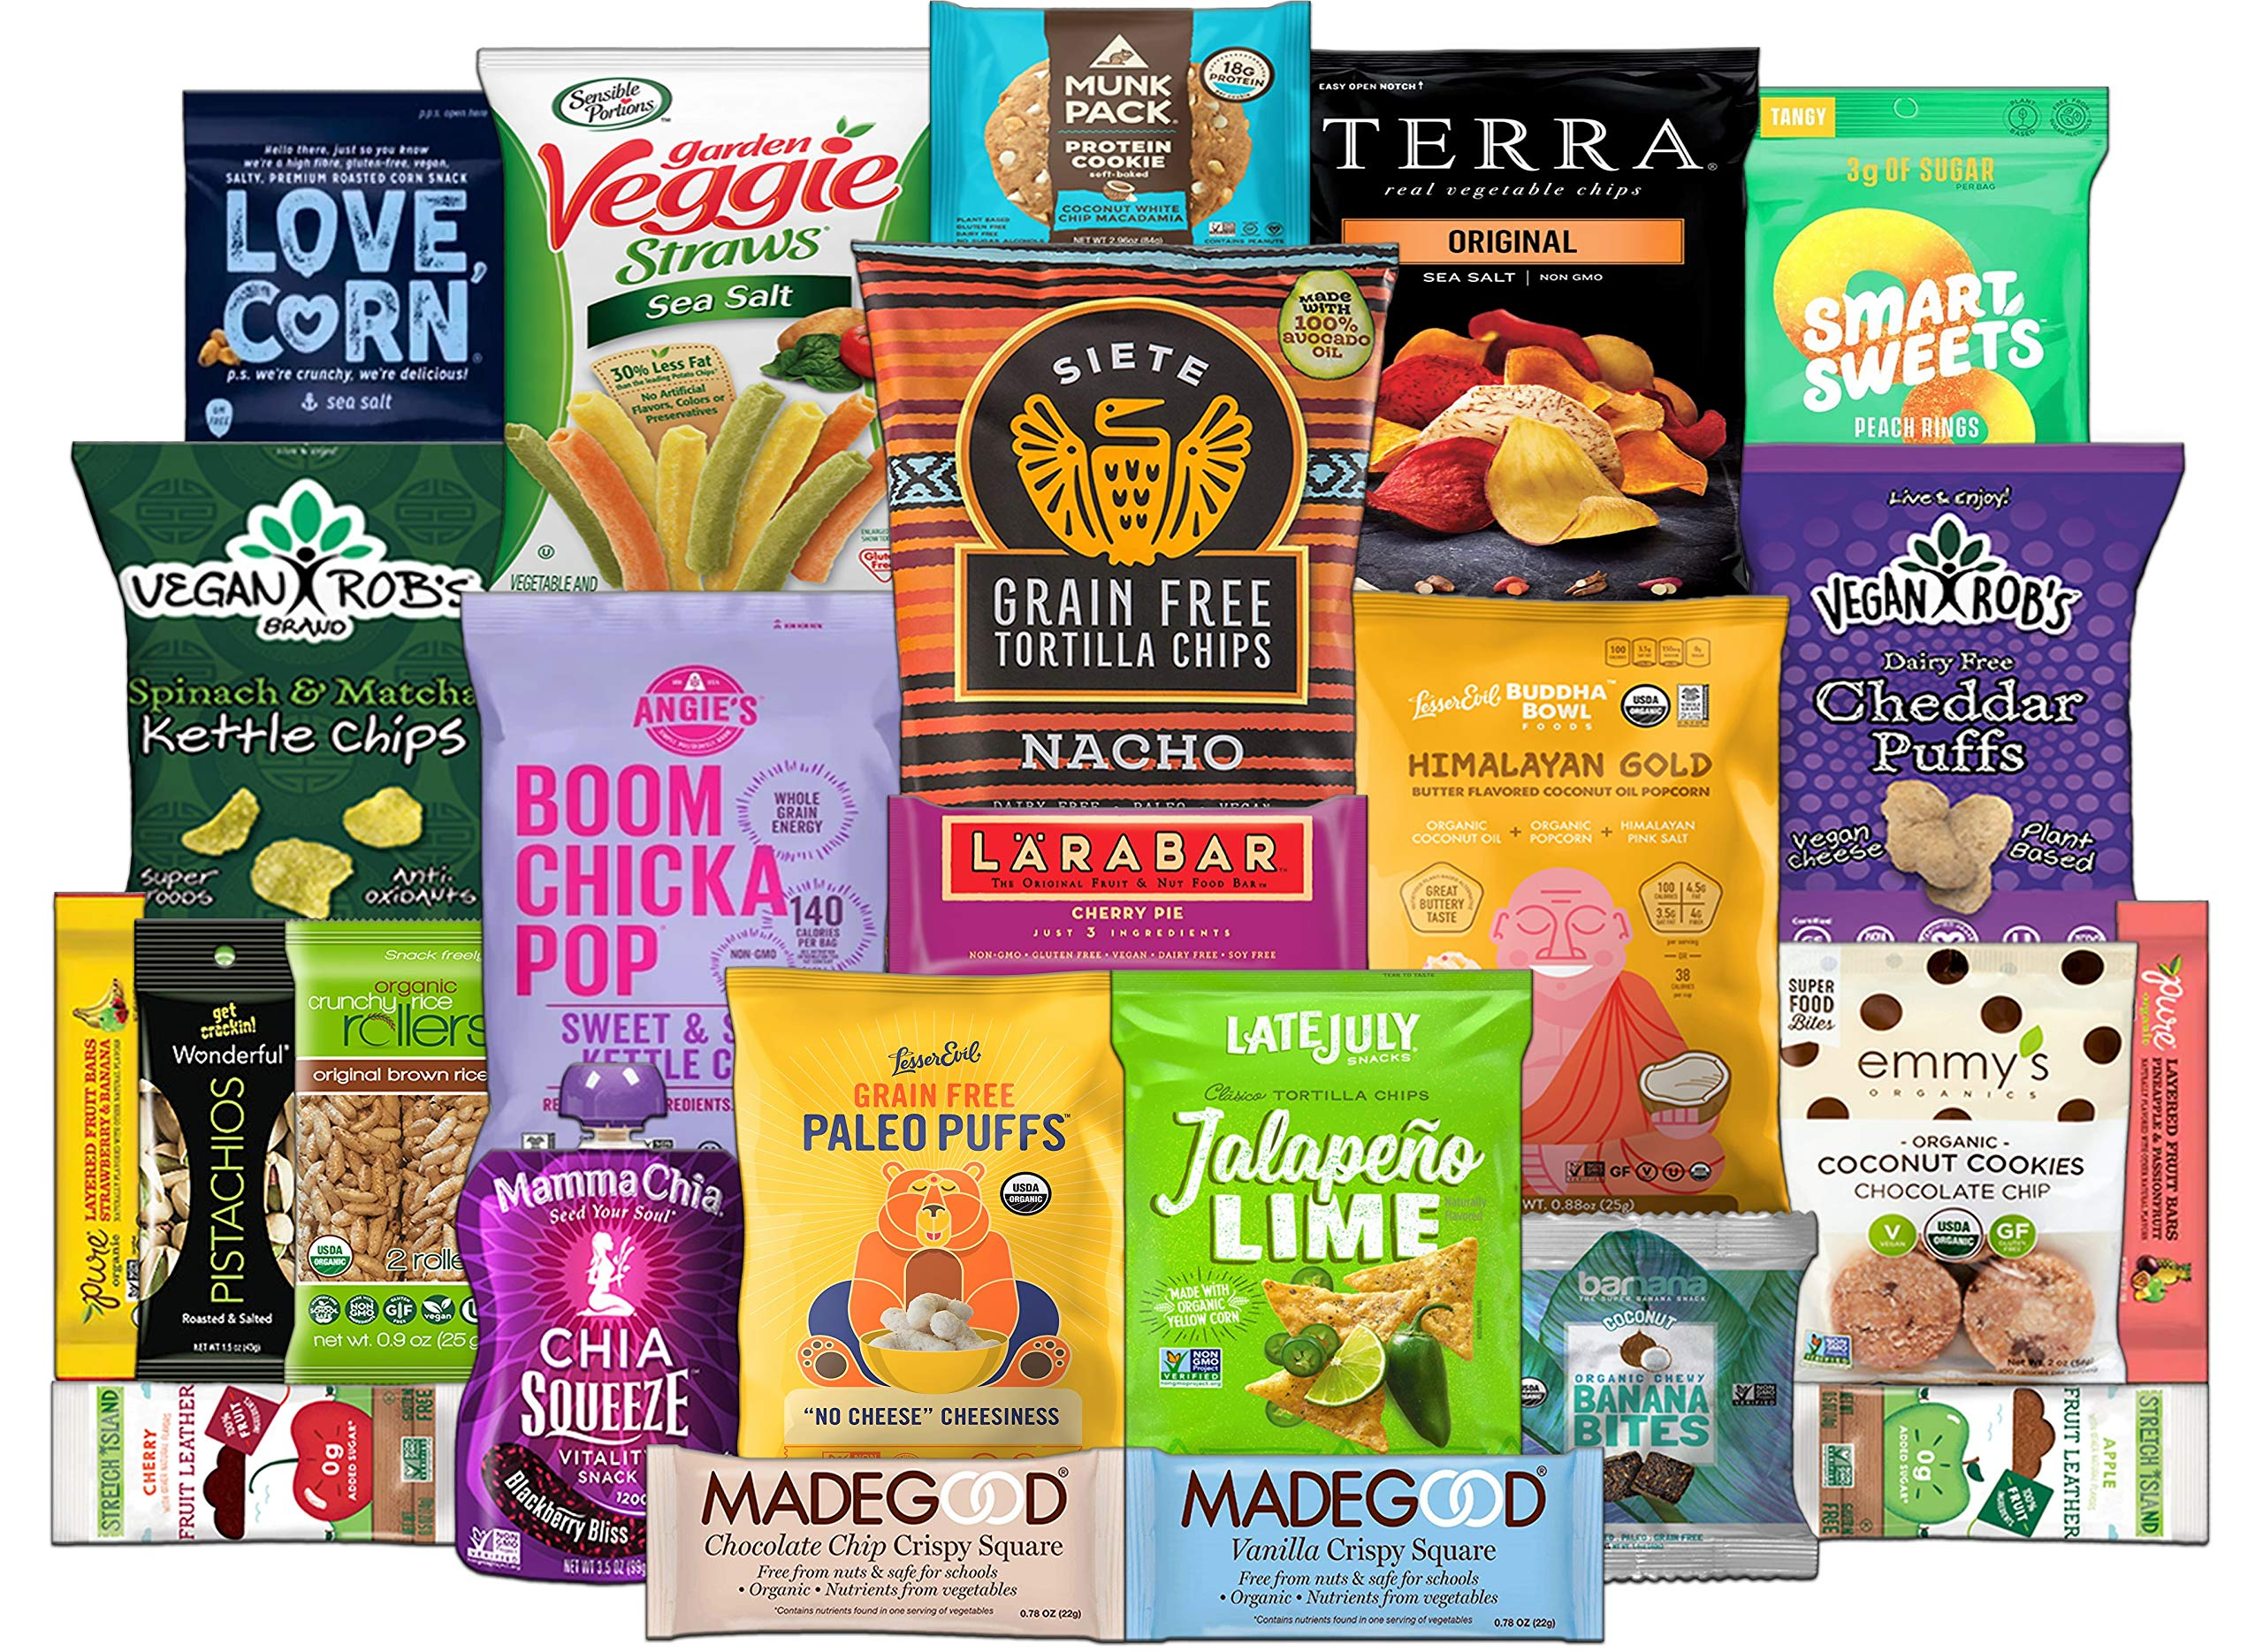 Healthy Vegan and Gluten Free Snack Assortment Care Package - Popcorn, Chips, Puffs, Nuts, Bars, Fruit Snacks (24 Count) by Custom Treats